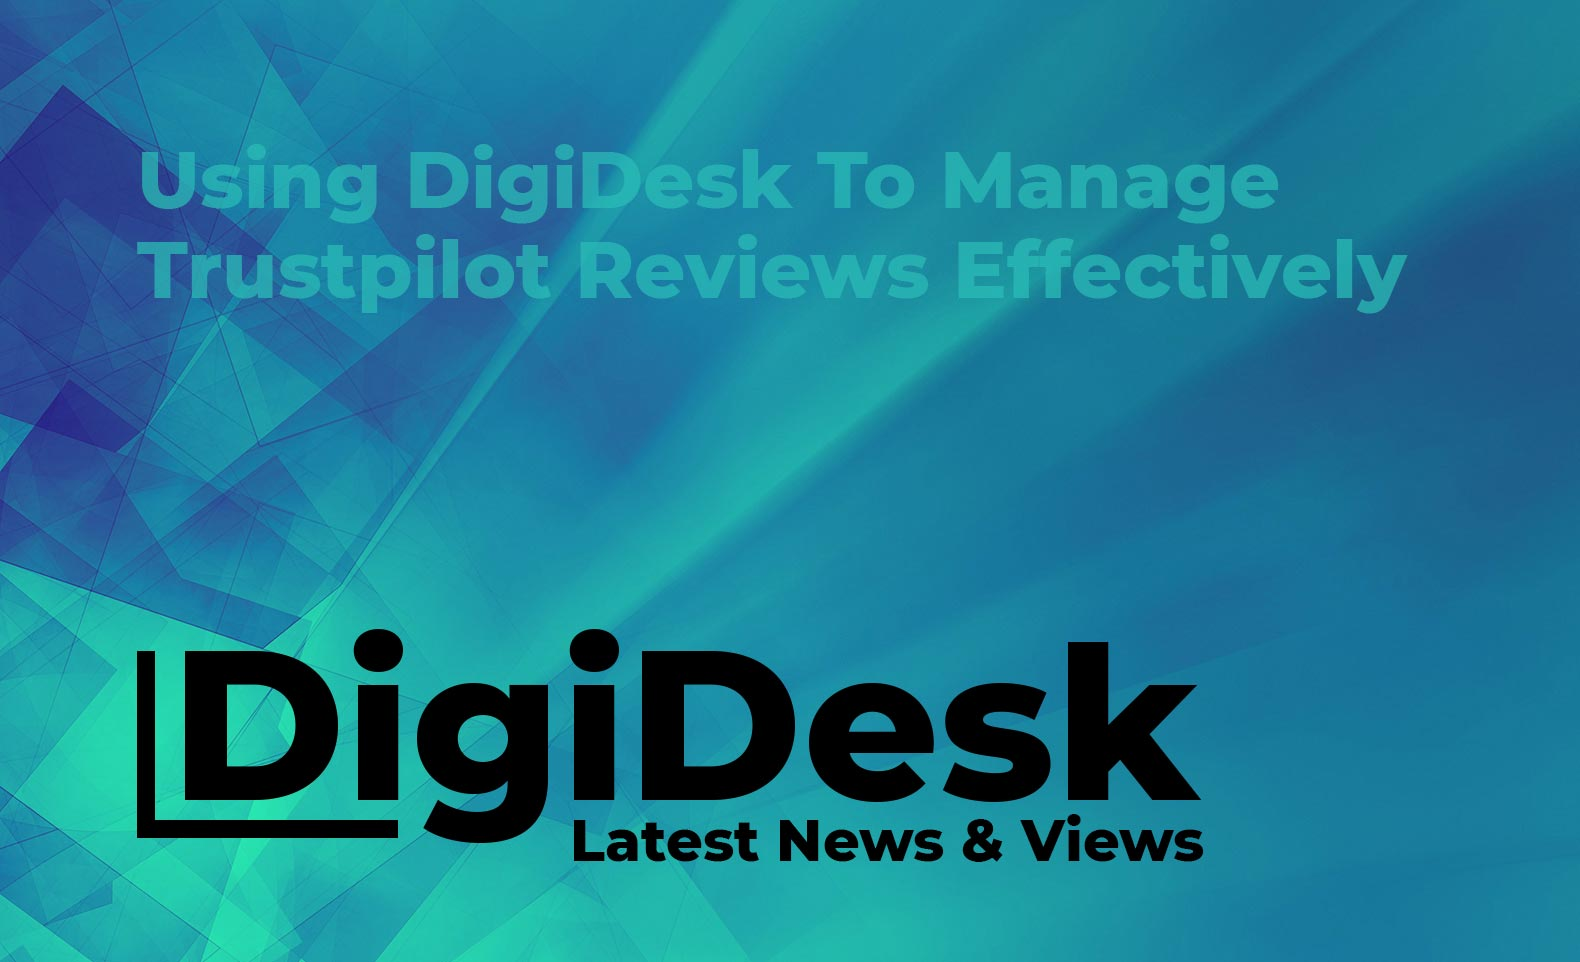 Blog banner - Using DigiDesk to manage Trustpilot reviews effectively